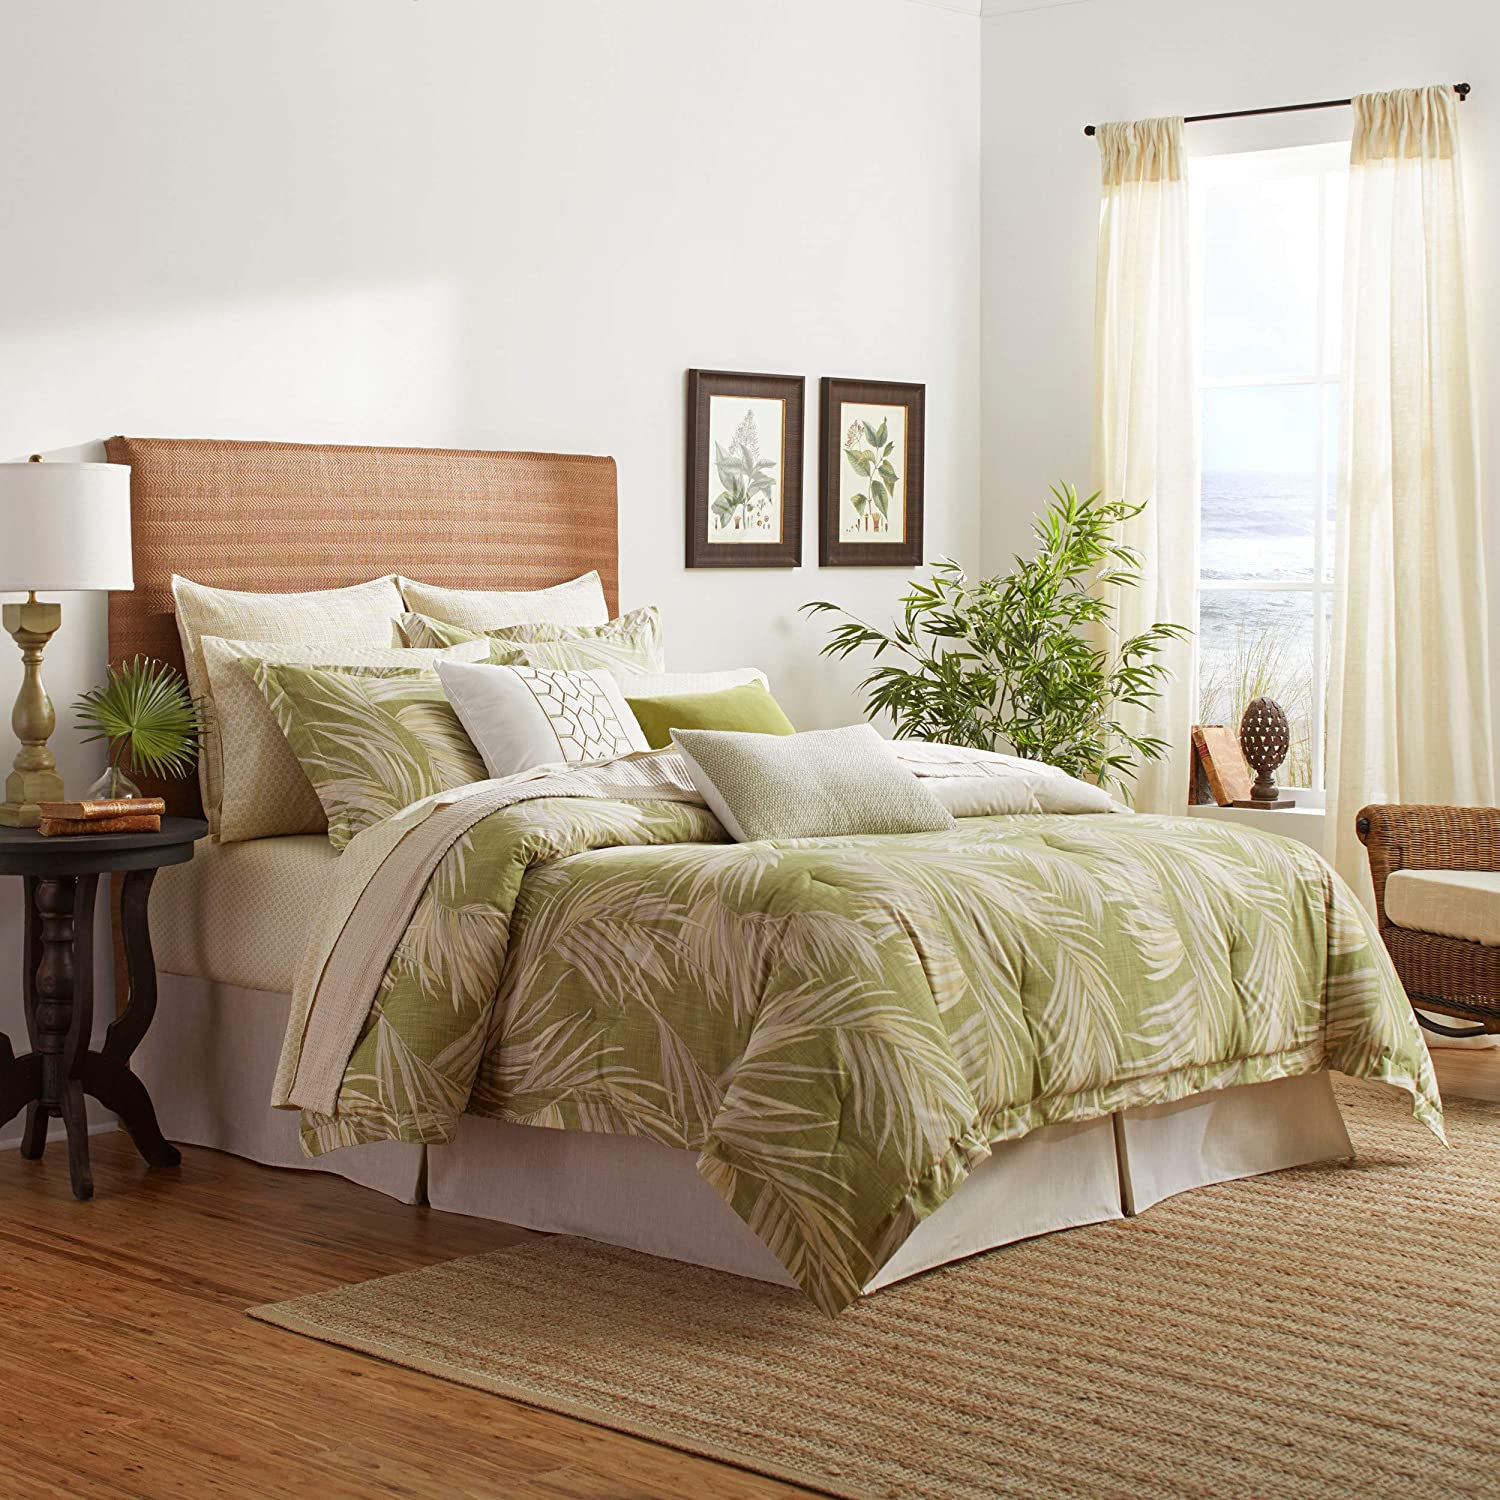 Tommy Bahama Canyon Palms Comforter Set, Queen, Green